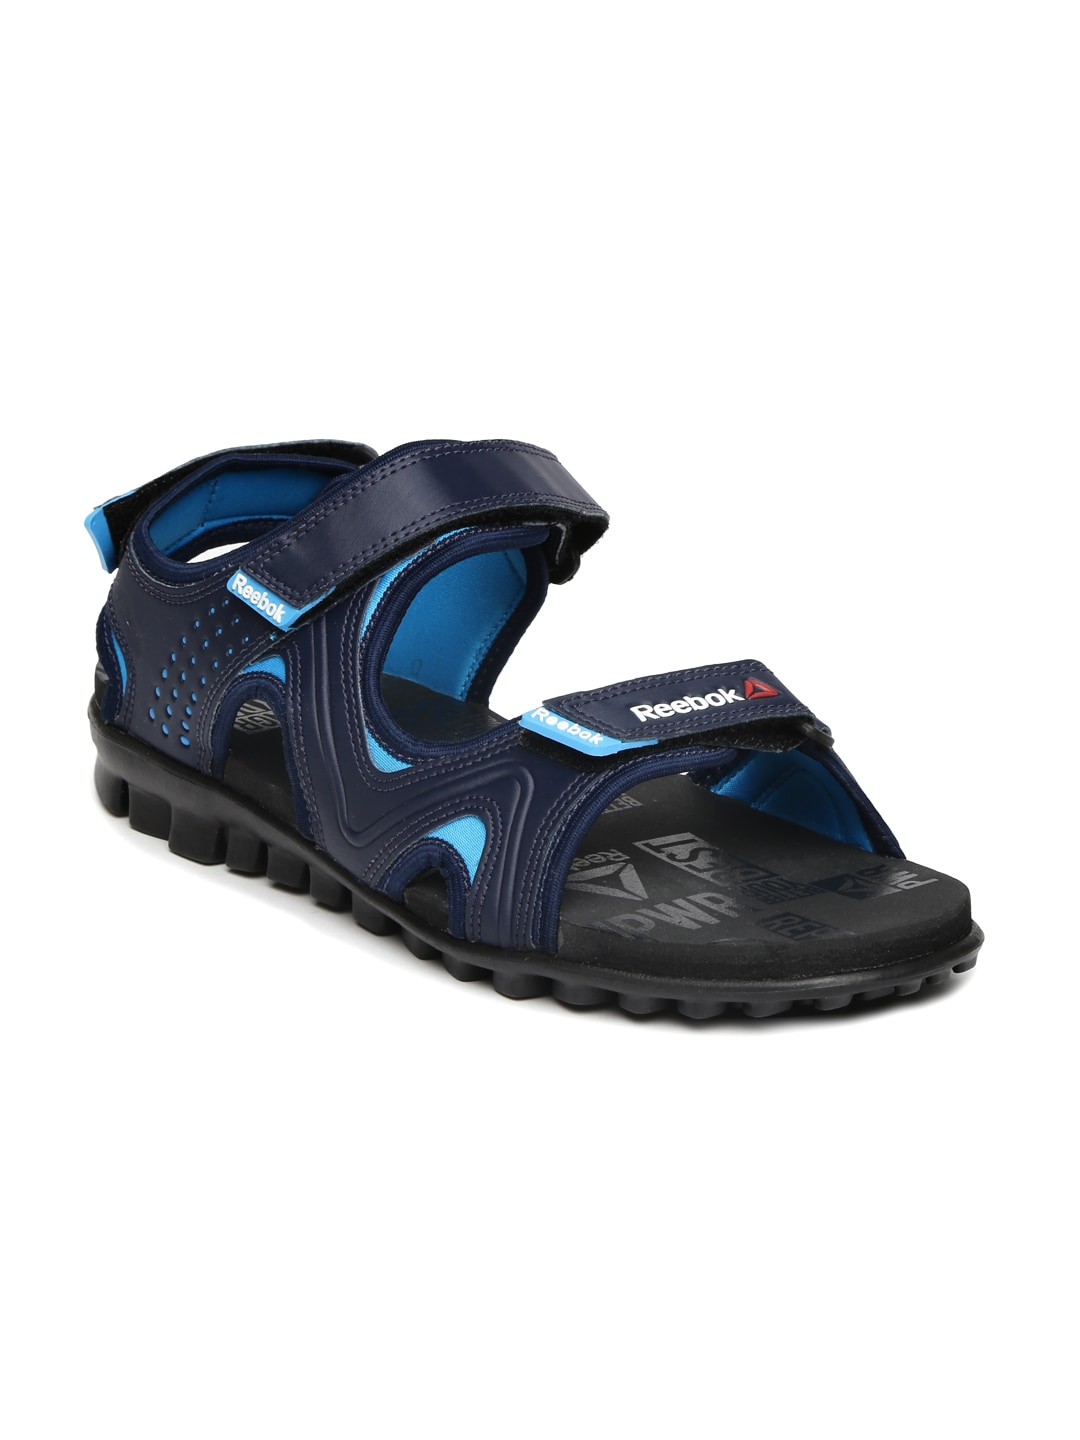 c4b7b913293 Reebok Floaters - Buy Reebok Sports Sandals online in India